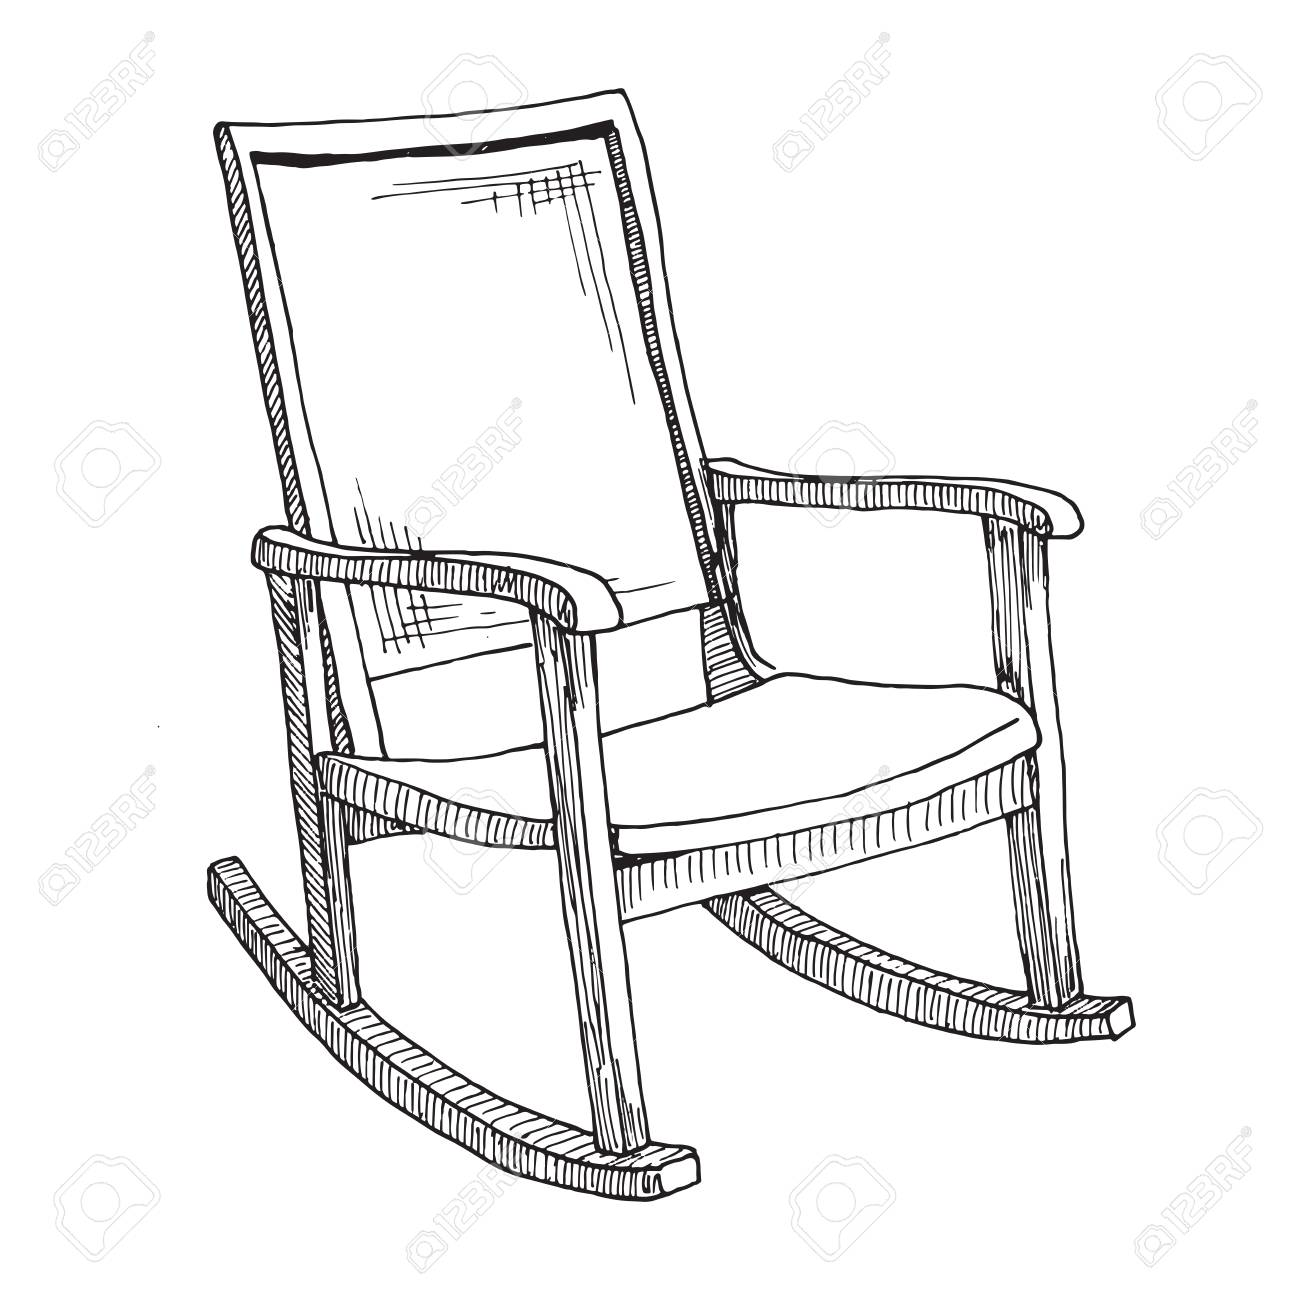 Awe Inspiring Comfortable Rocking Chair White Isolated Backgroundsketch On Pdpeps Interior Chair Design Pdpepsorg